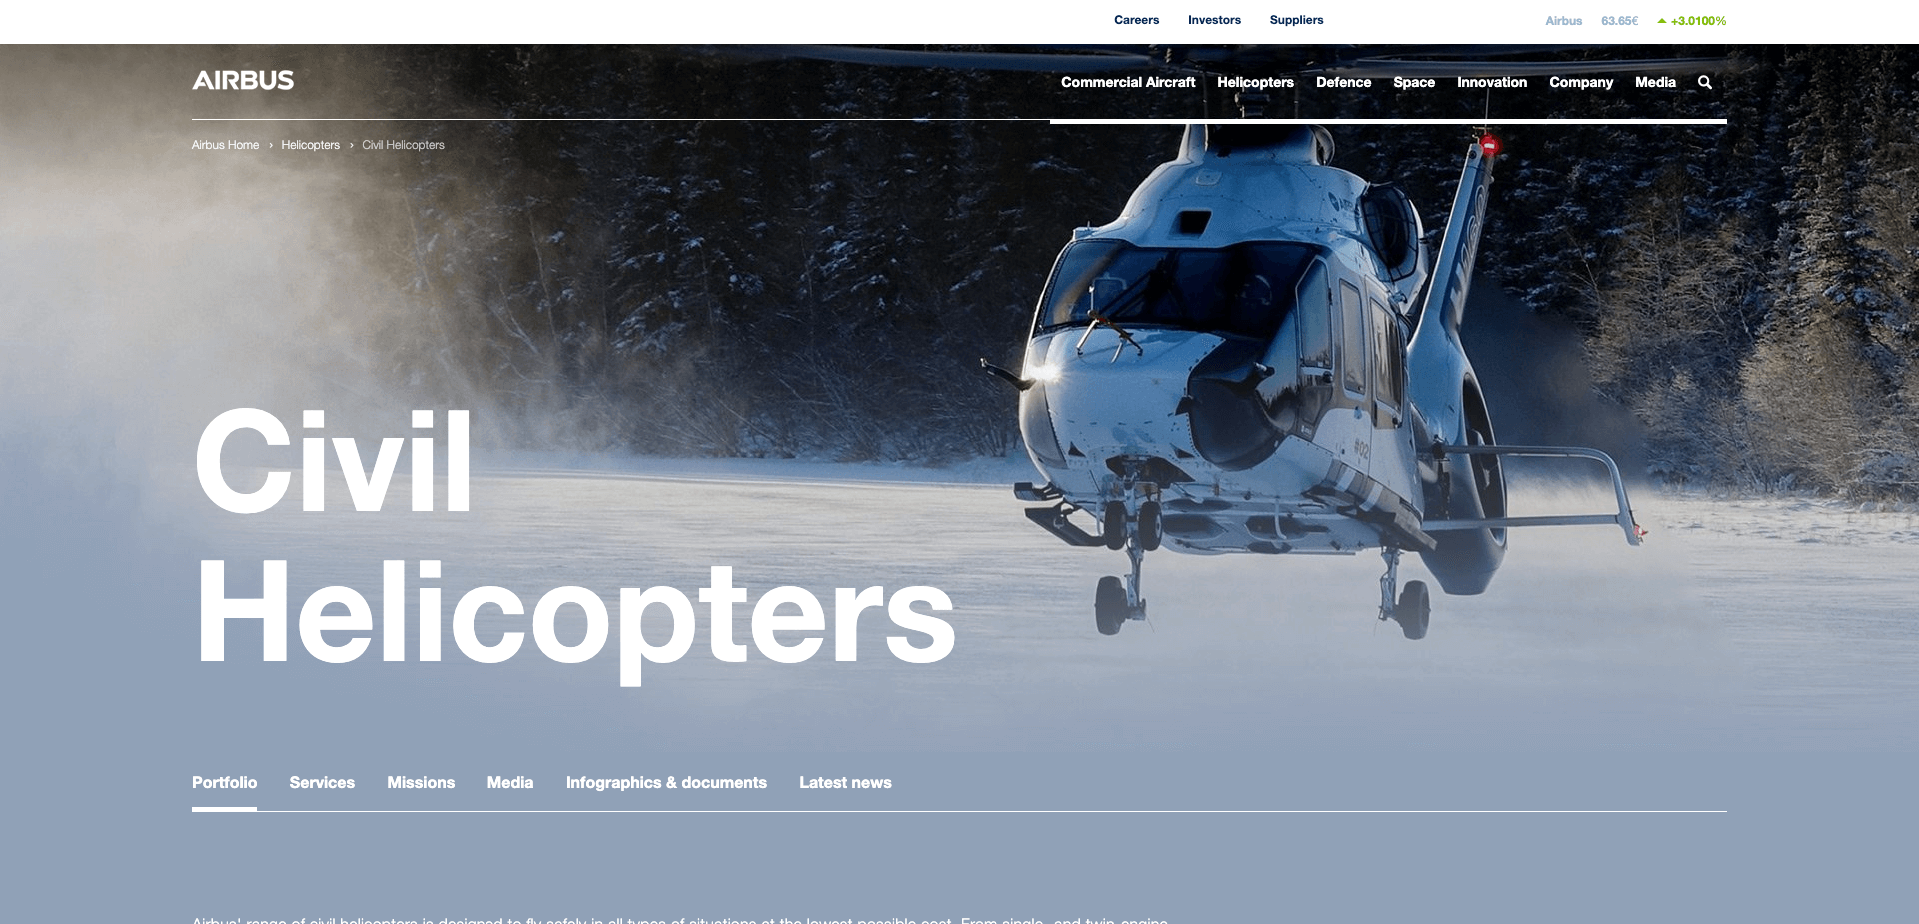 Airbus Civil Helicopters